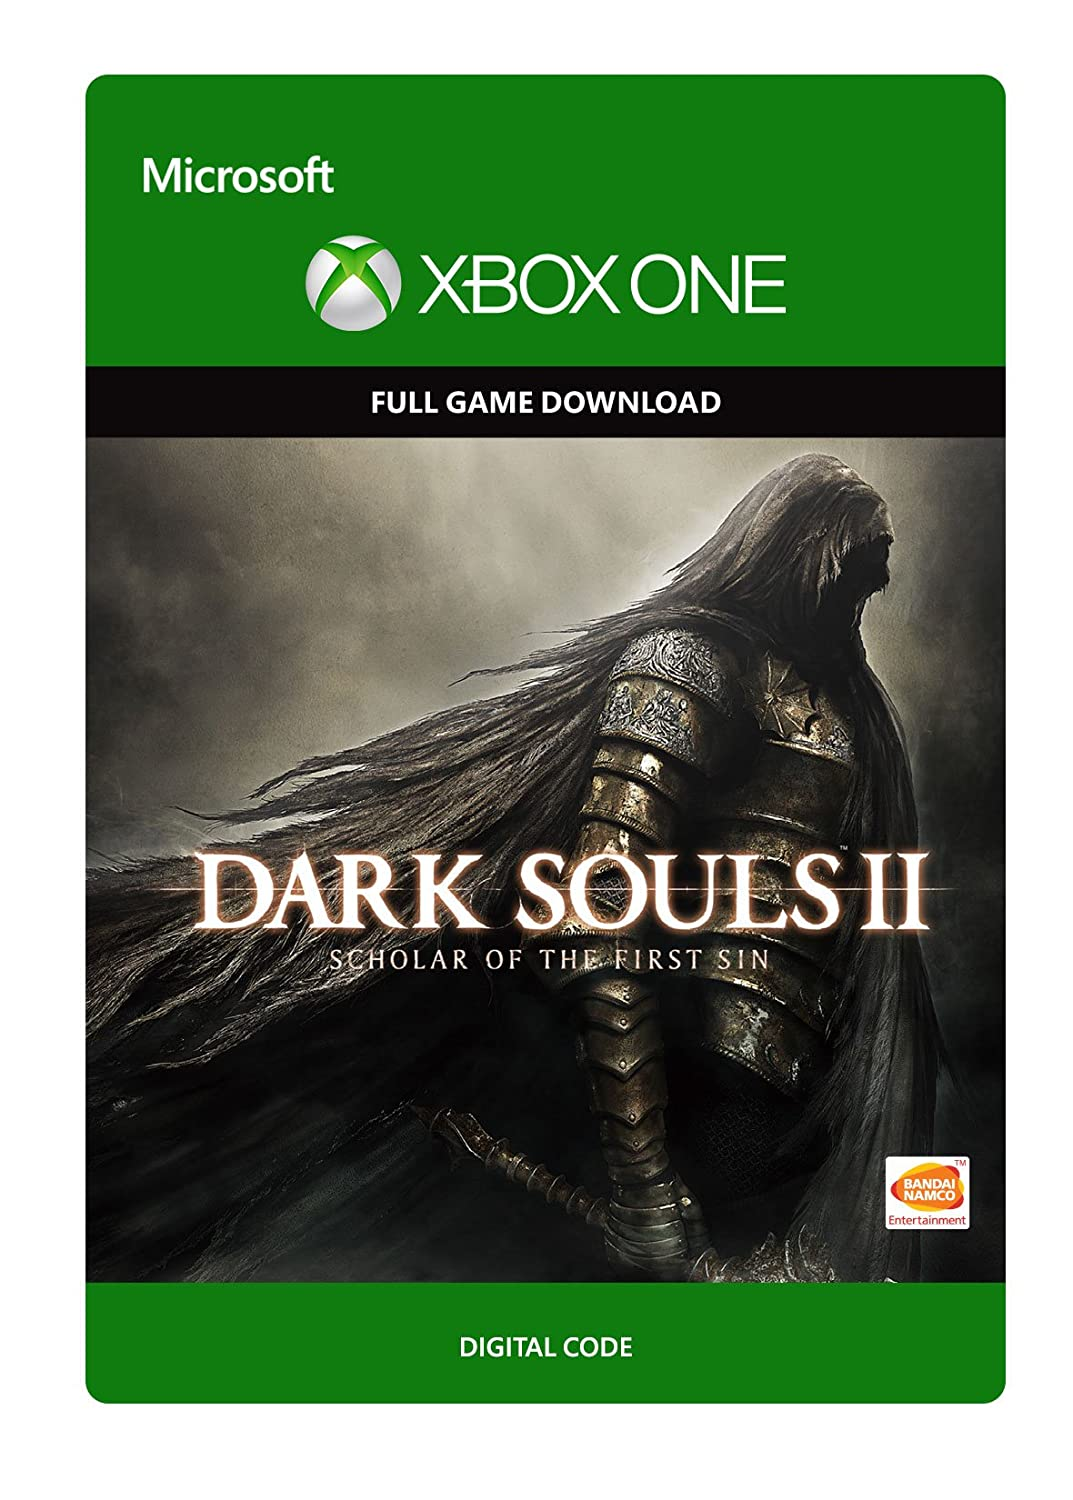 Dark Souls II: Scholar of the First Sin - Xbox One (Digital Code)